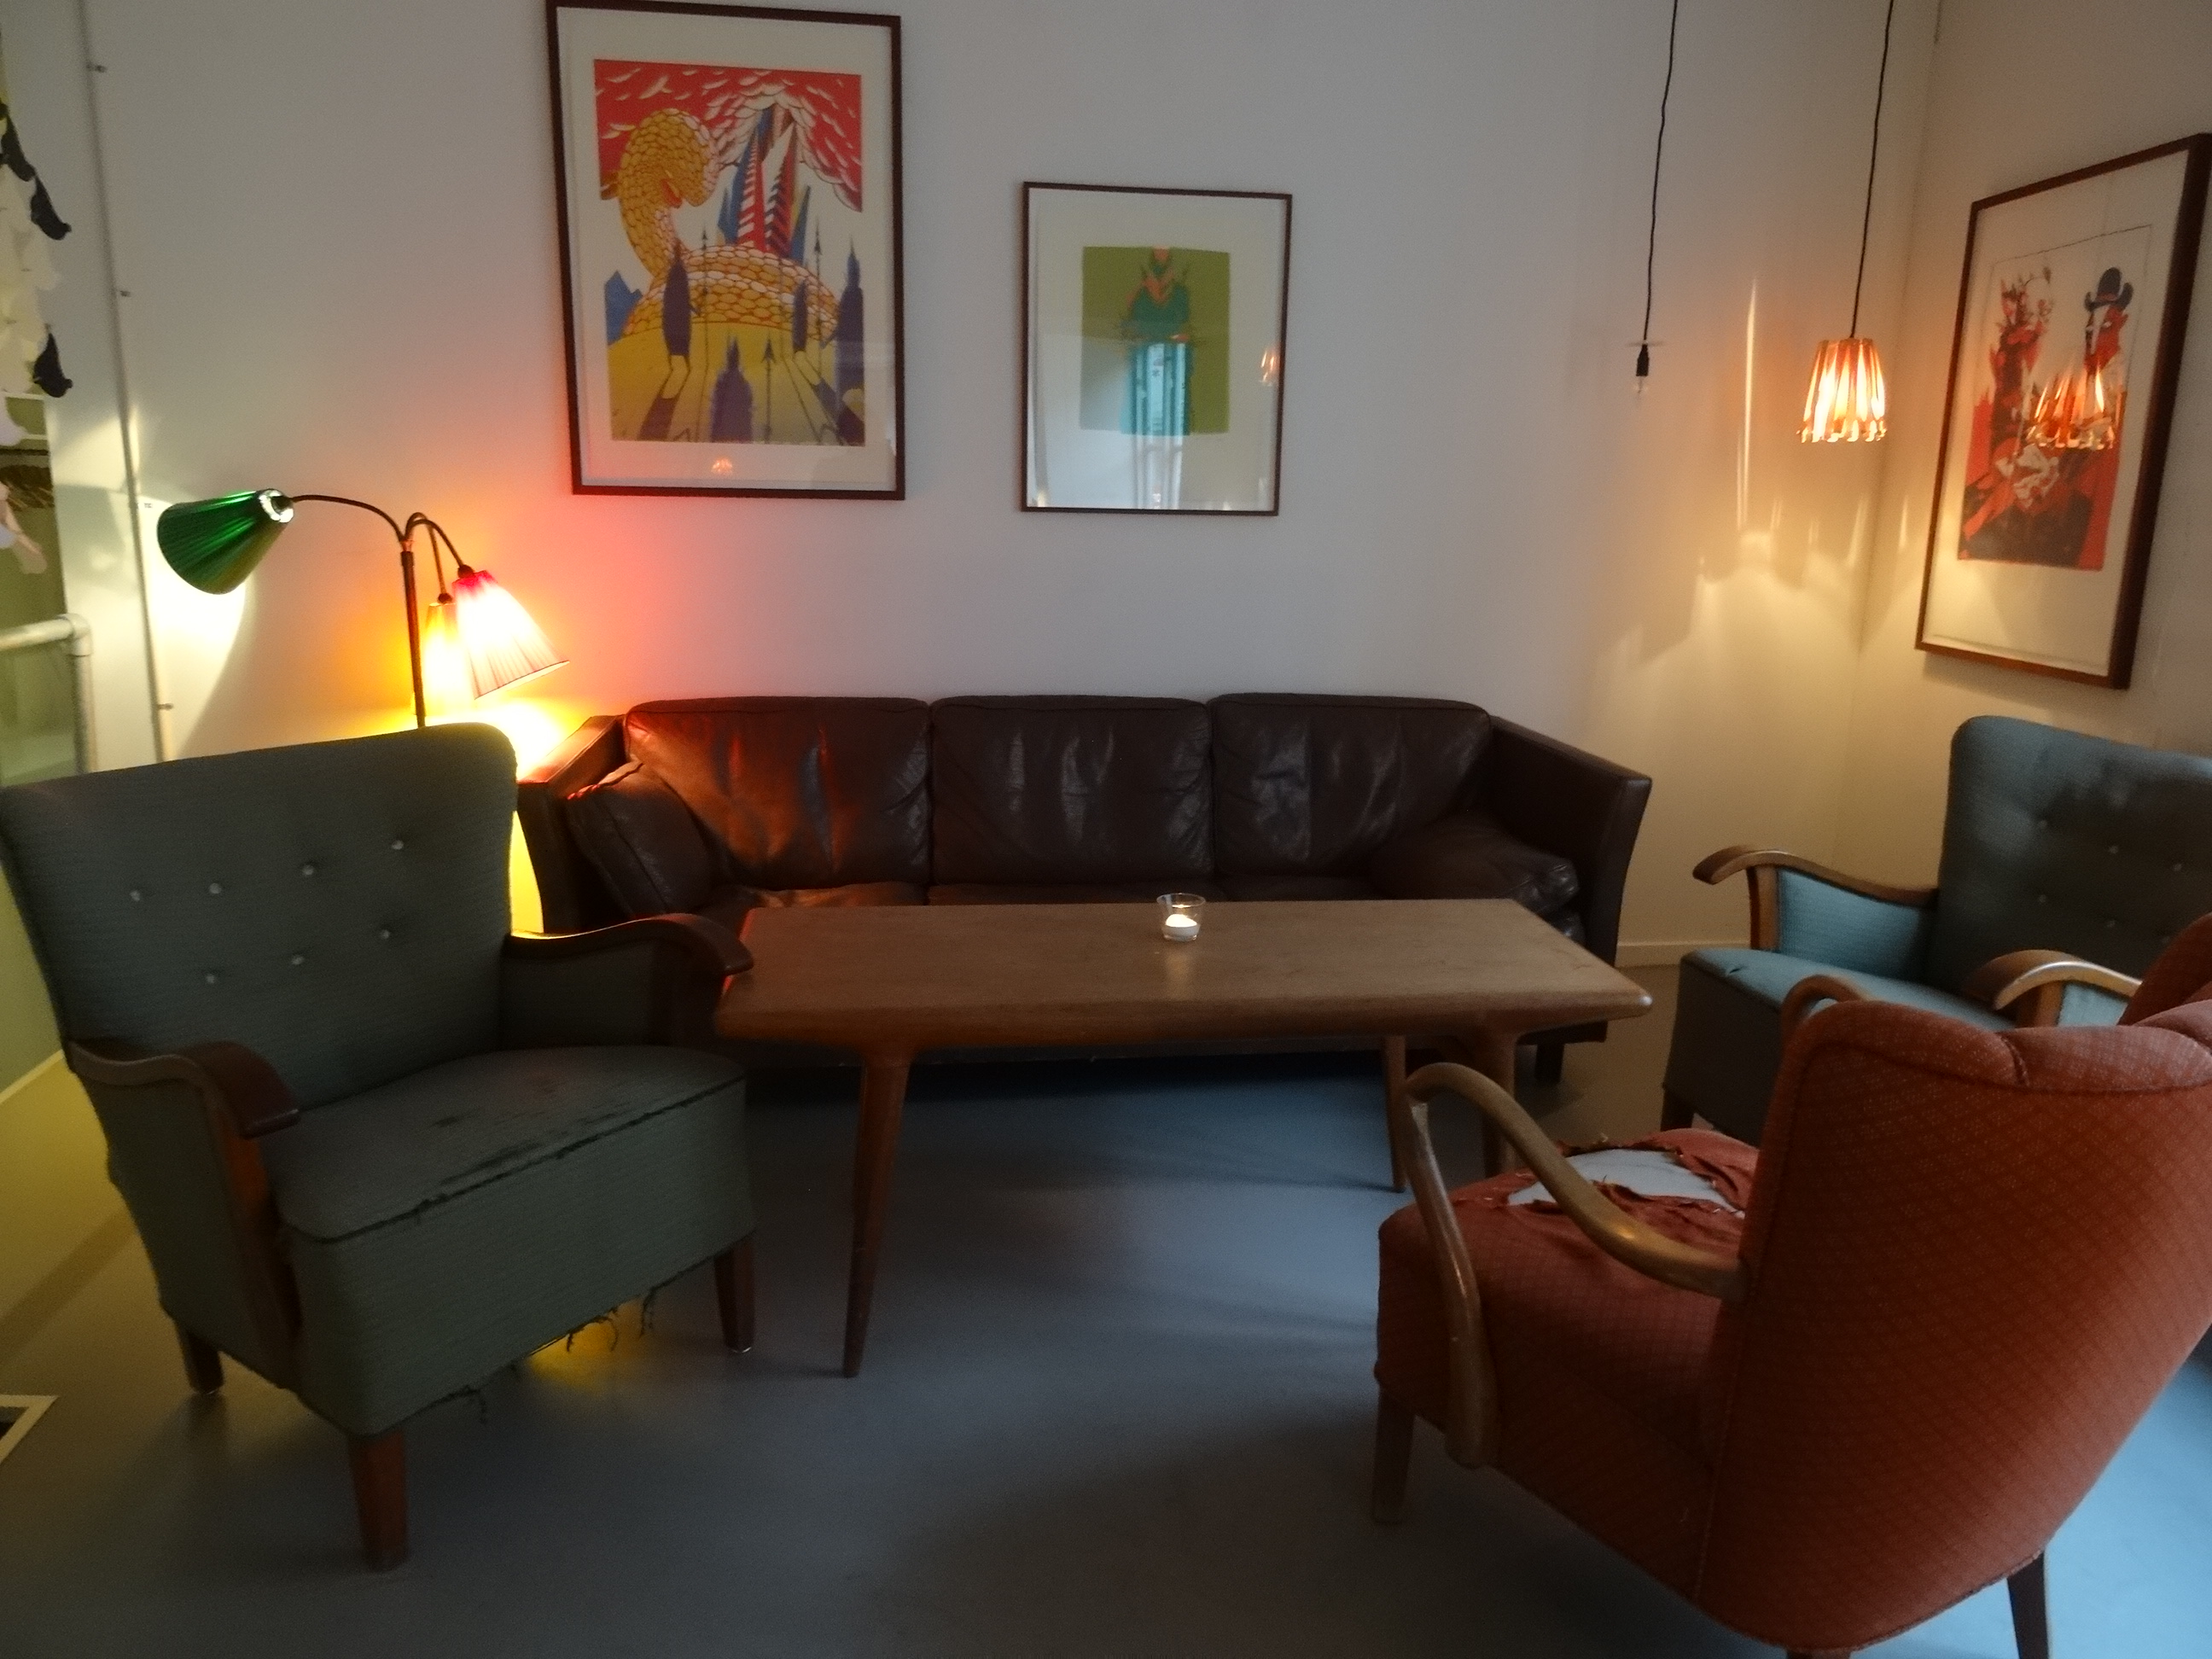 The Main Station Is An Amazing Space Designed Specifically For Freelancers Republikken Was Started Ten Years Ago And Both A Cafe Co Working